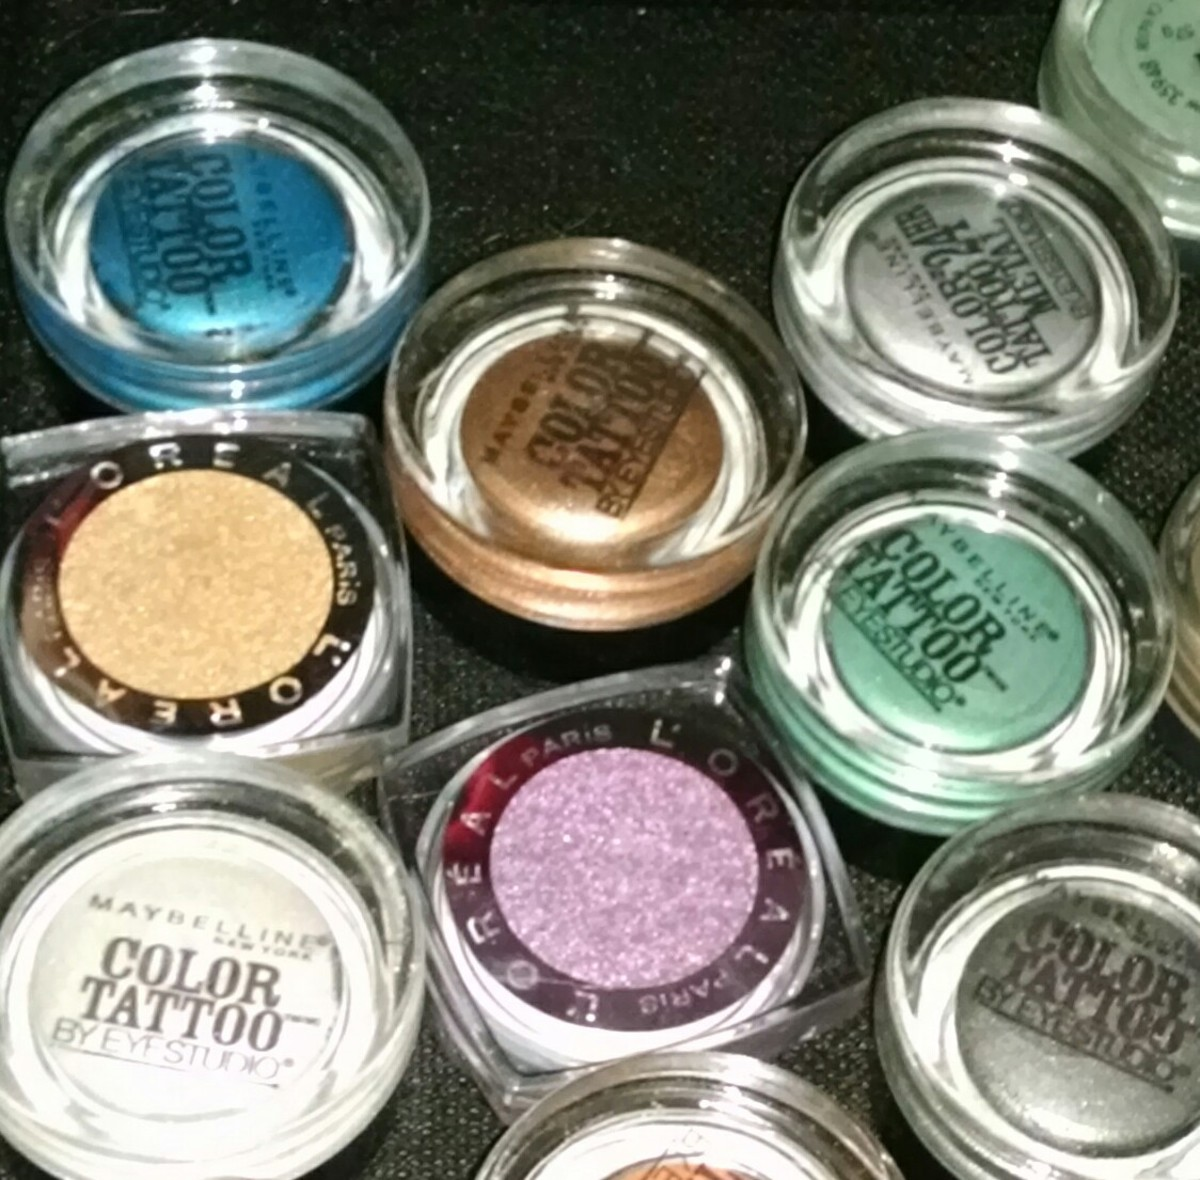 Maybelline Color Tattoo & L'Oreal Infallible Eye Shadow